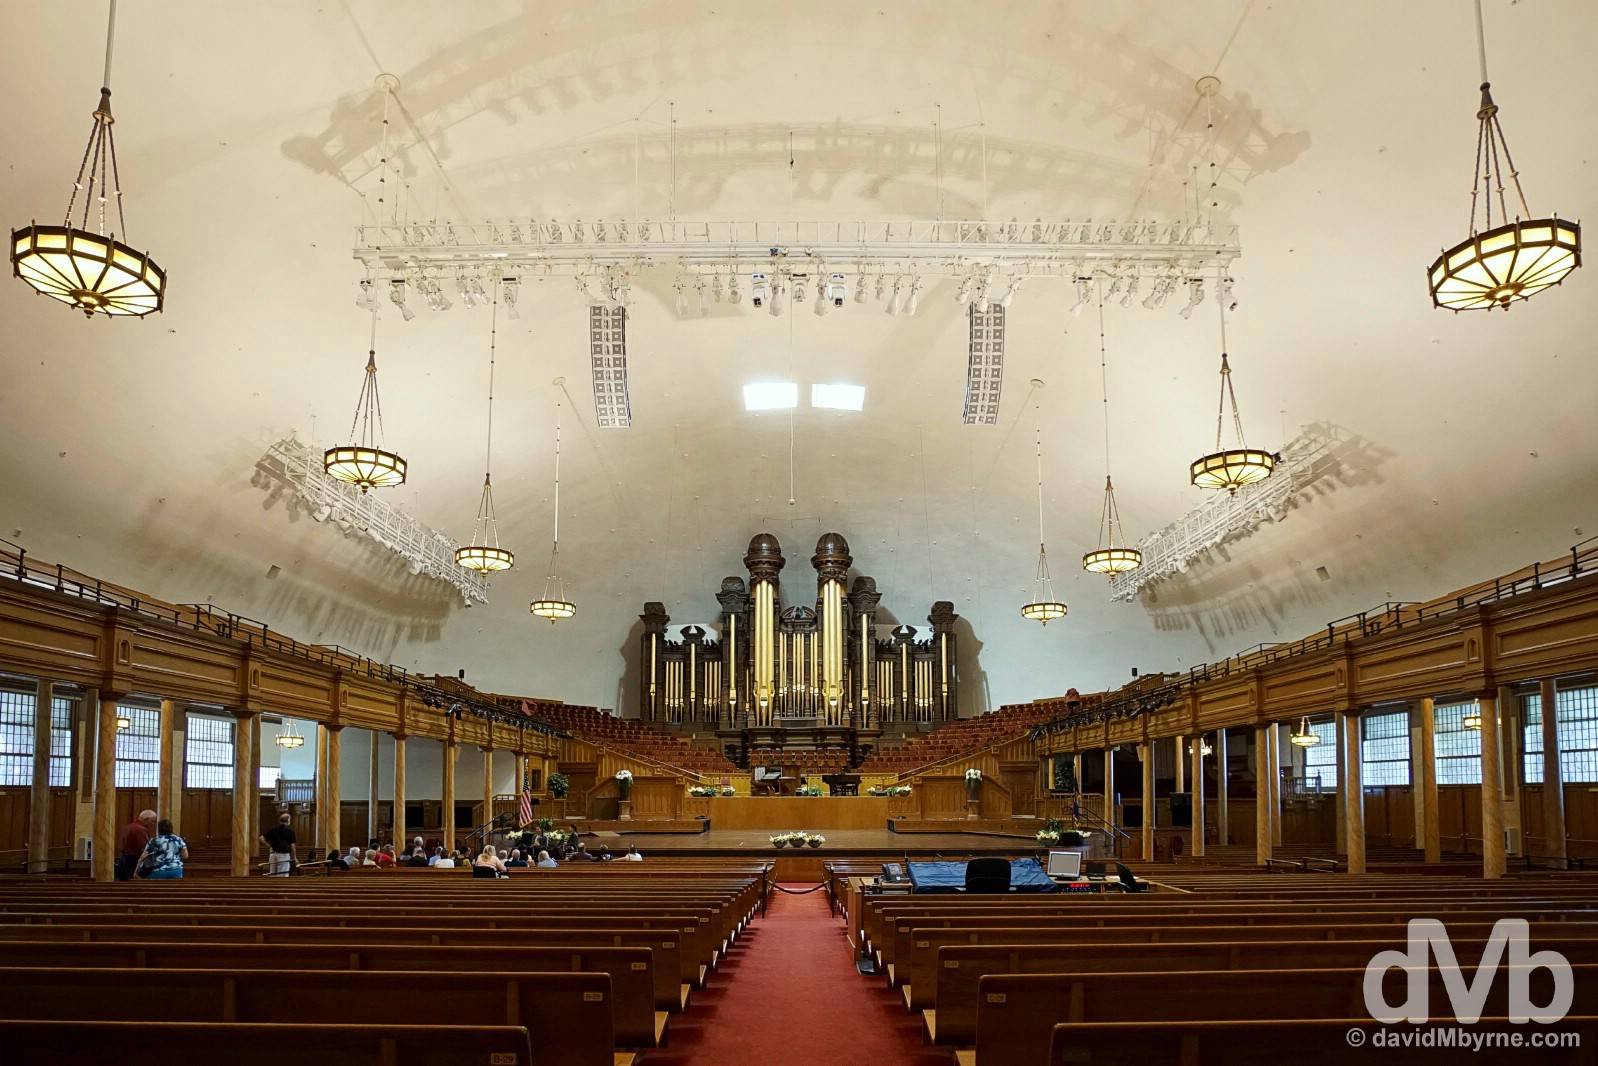 The interior of the Mormon Tabernacle in Temple Square, Salt Lake City, Utah, USA. September 7, 2016.